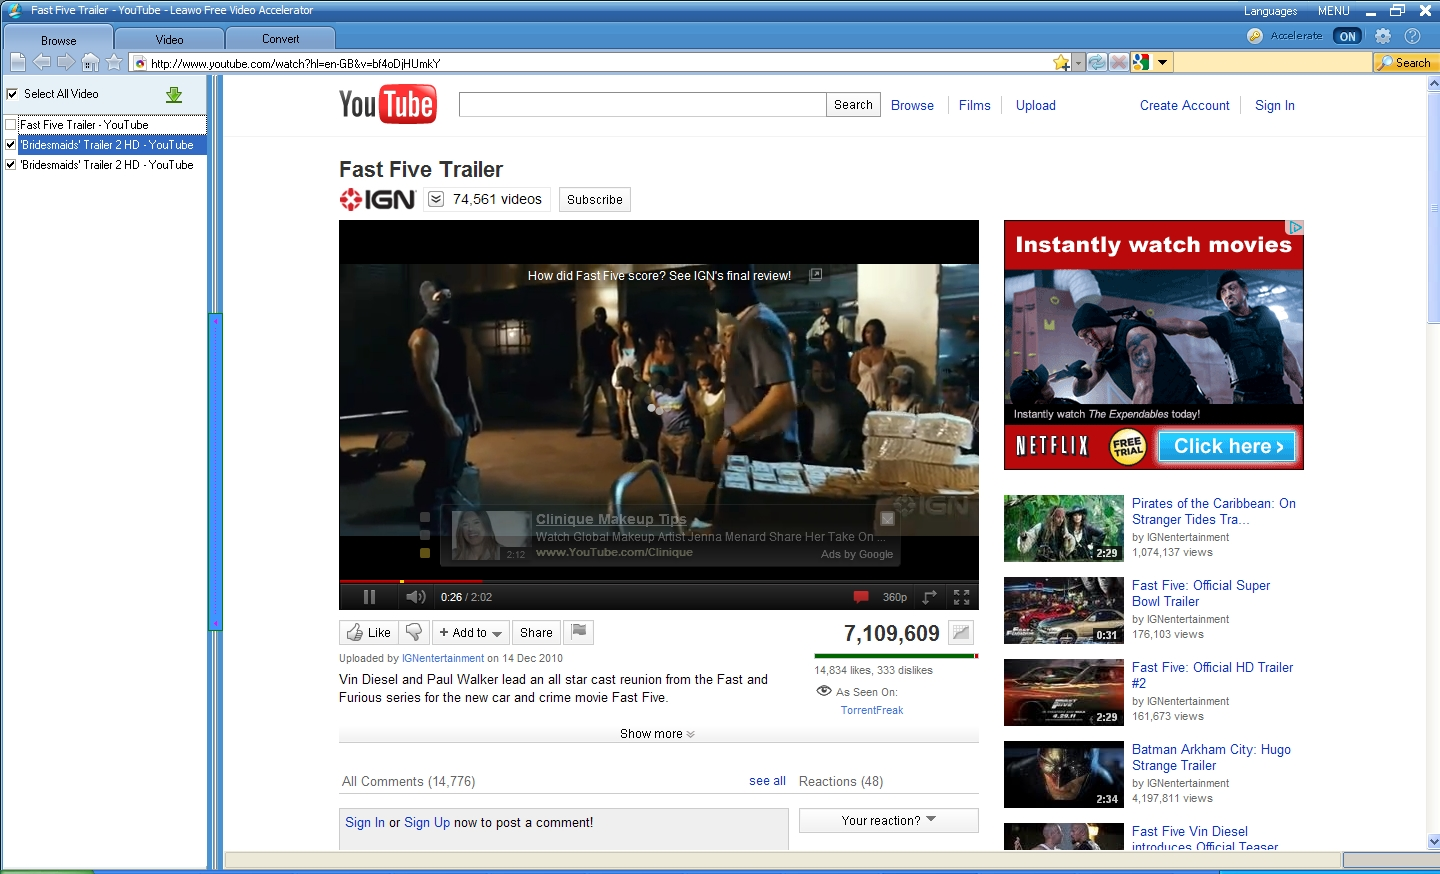 Search For Fast Five Movie Video On Youtube